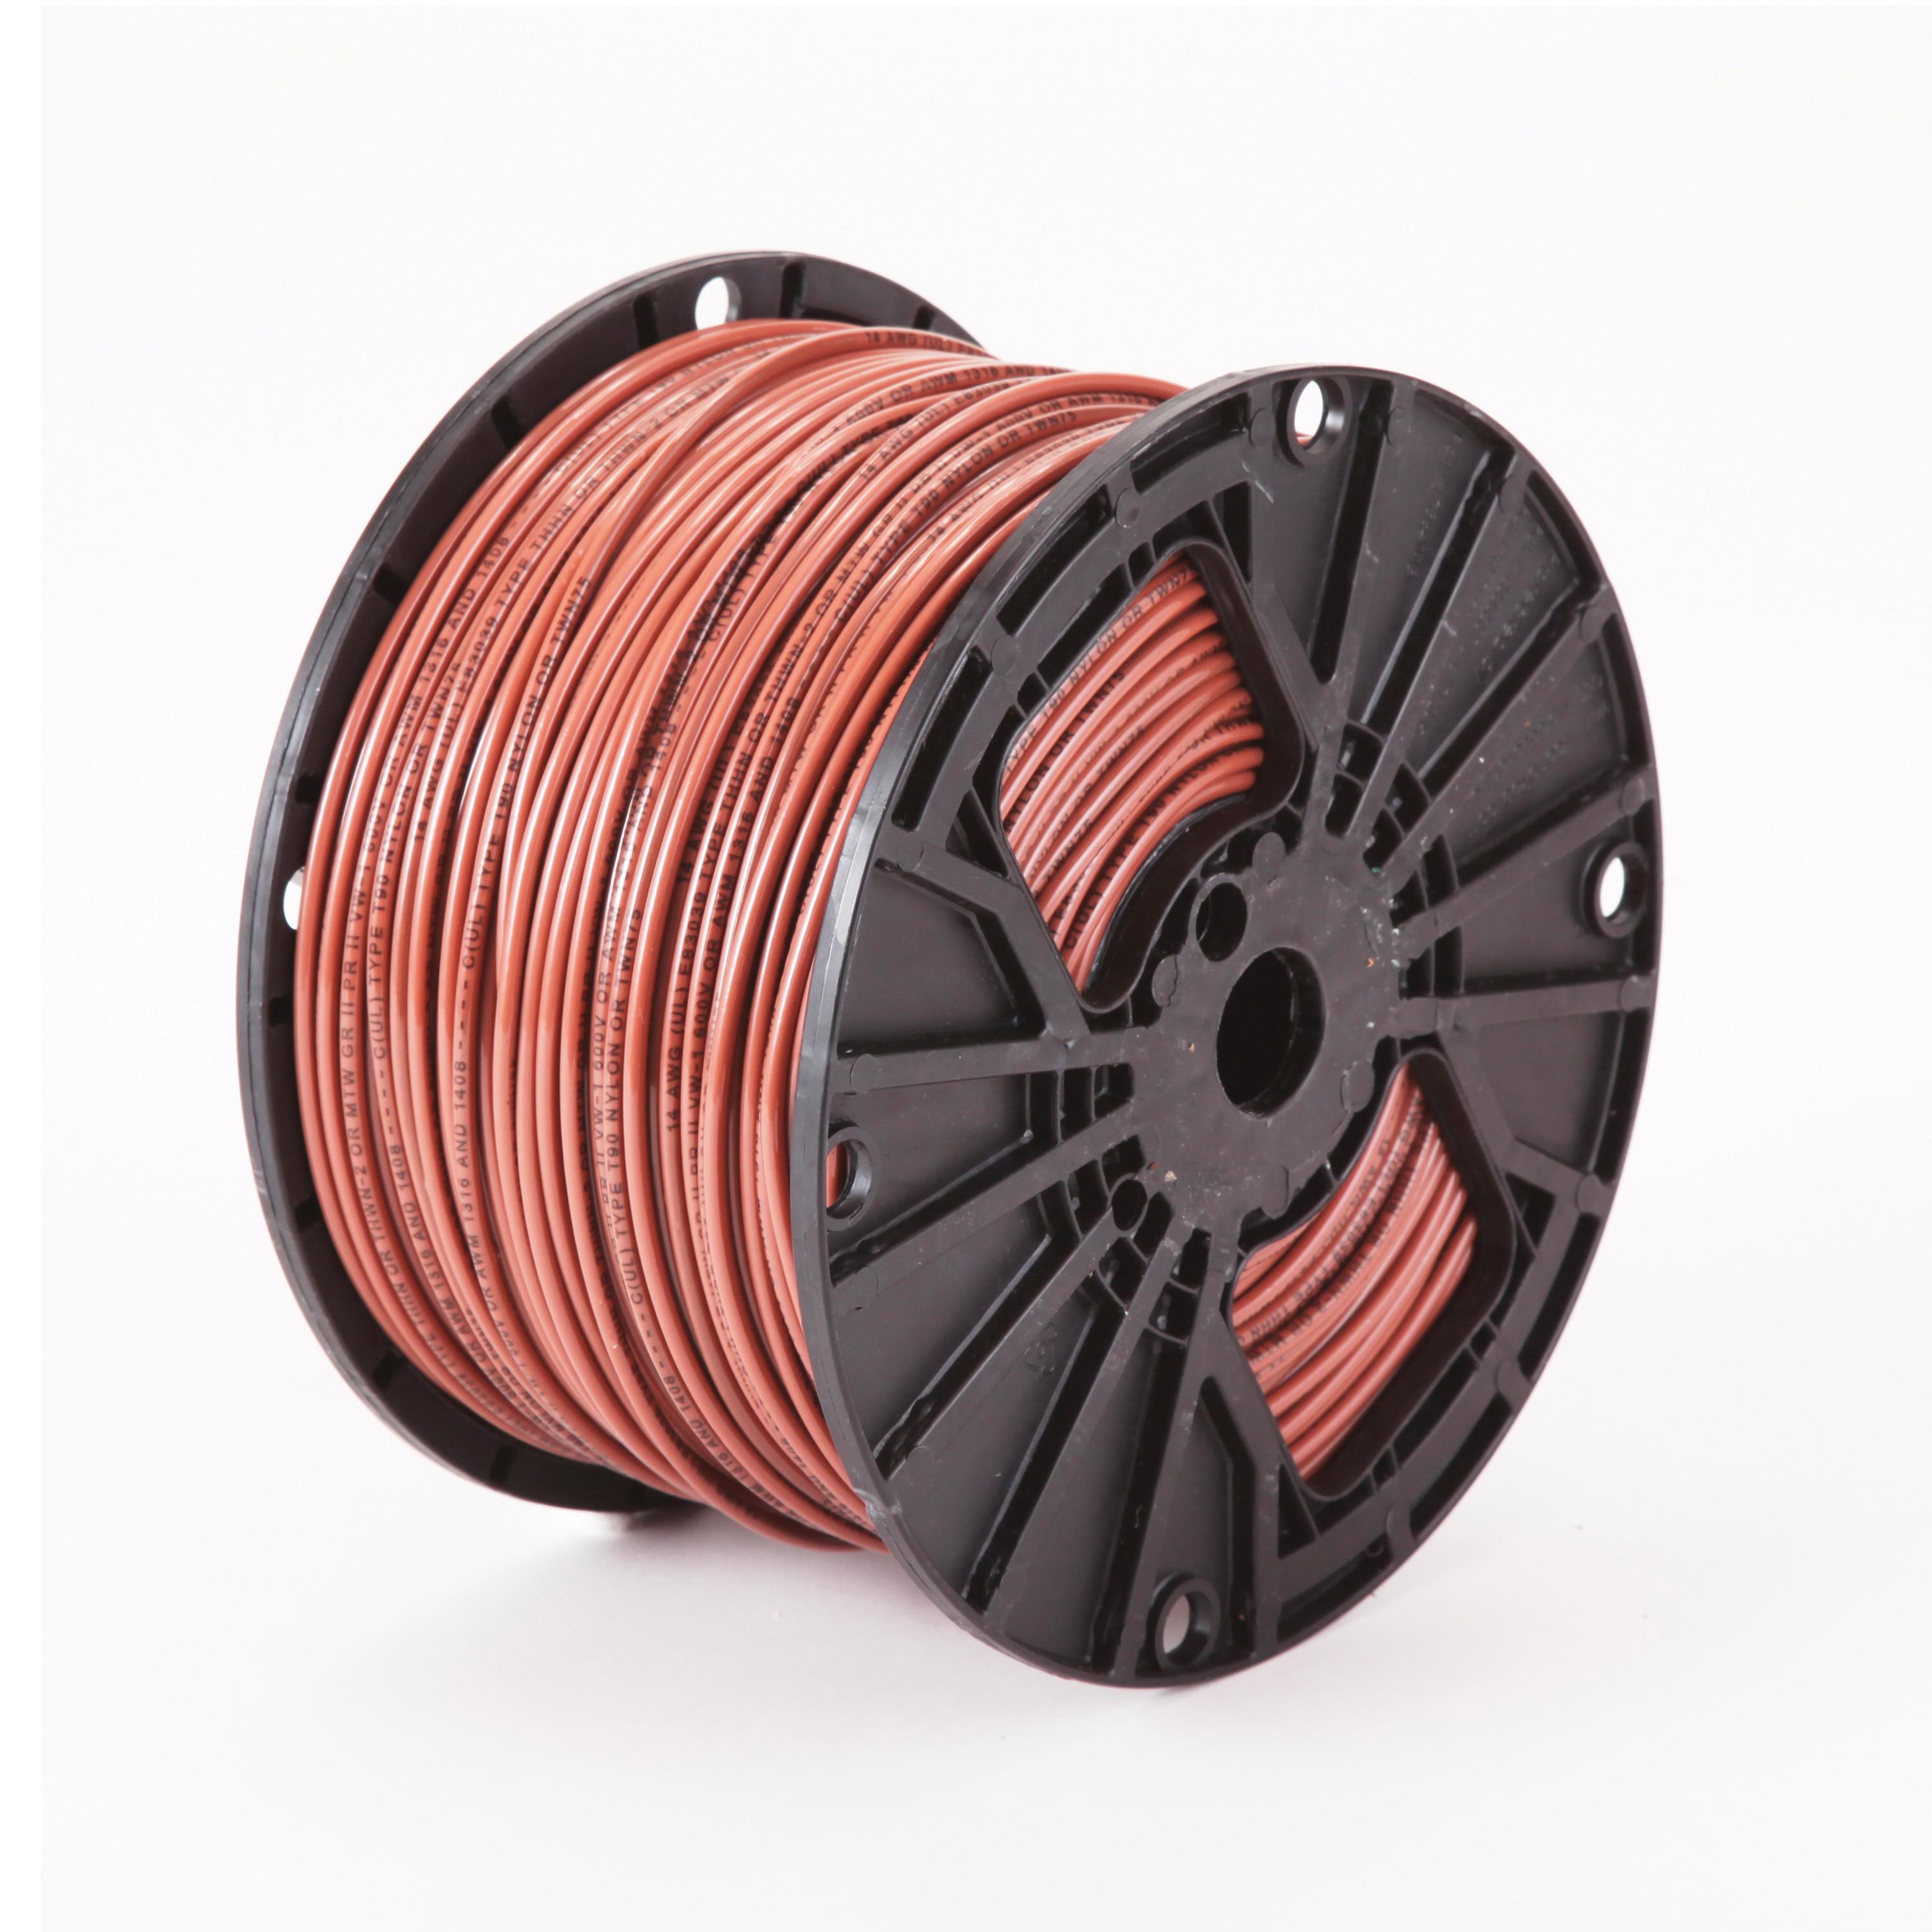 4 Awg Thhn Wire | Thhn 4 Awg Stranded Brown Copper Building Wire 2500 Ft Reel Order By